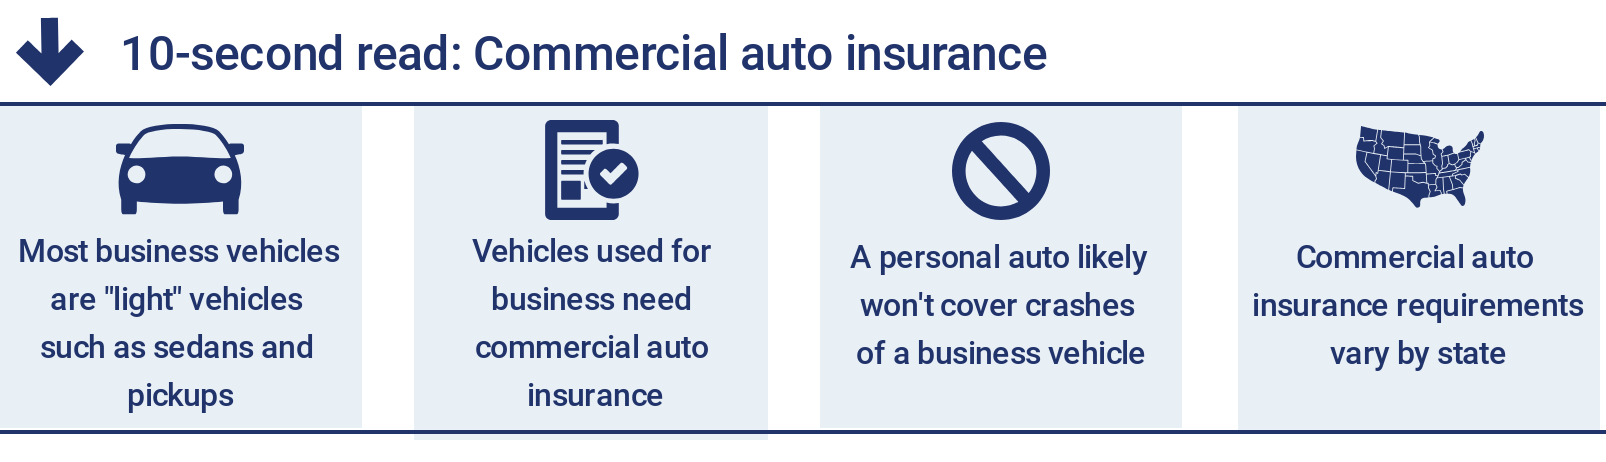 Commercial Auto Insurance Requirements Options